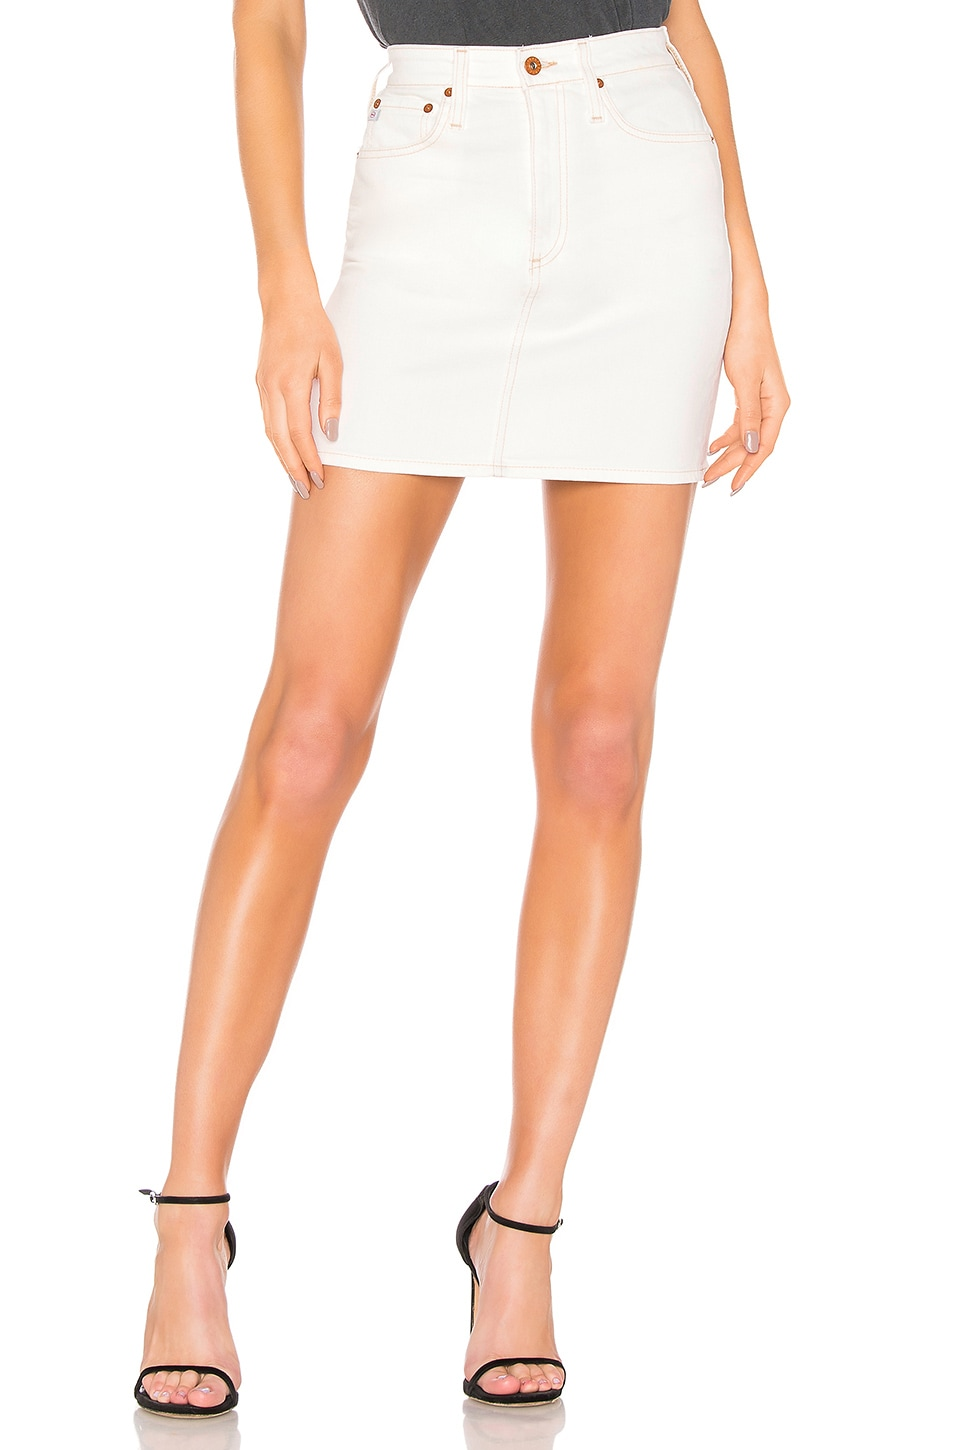 AG Adriano Goldschmied Vera Skirt in 1 Year Bare White